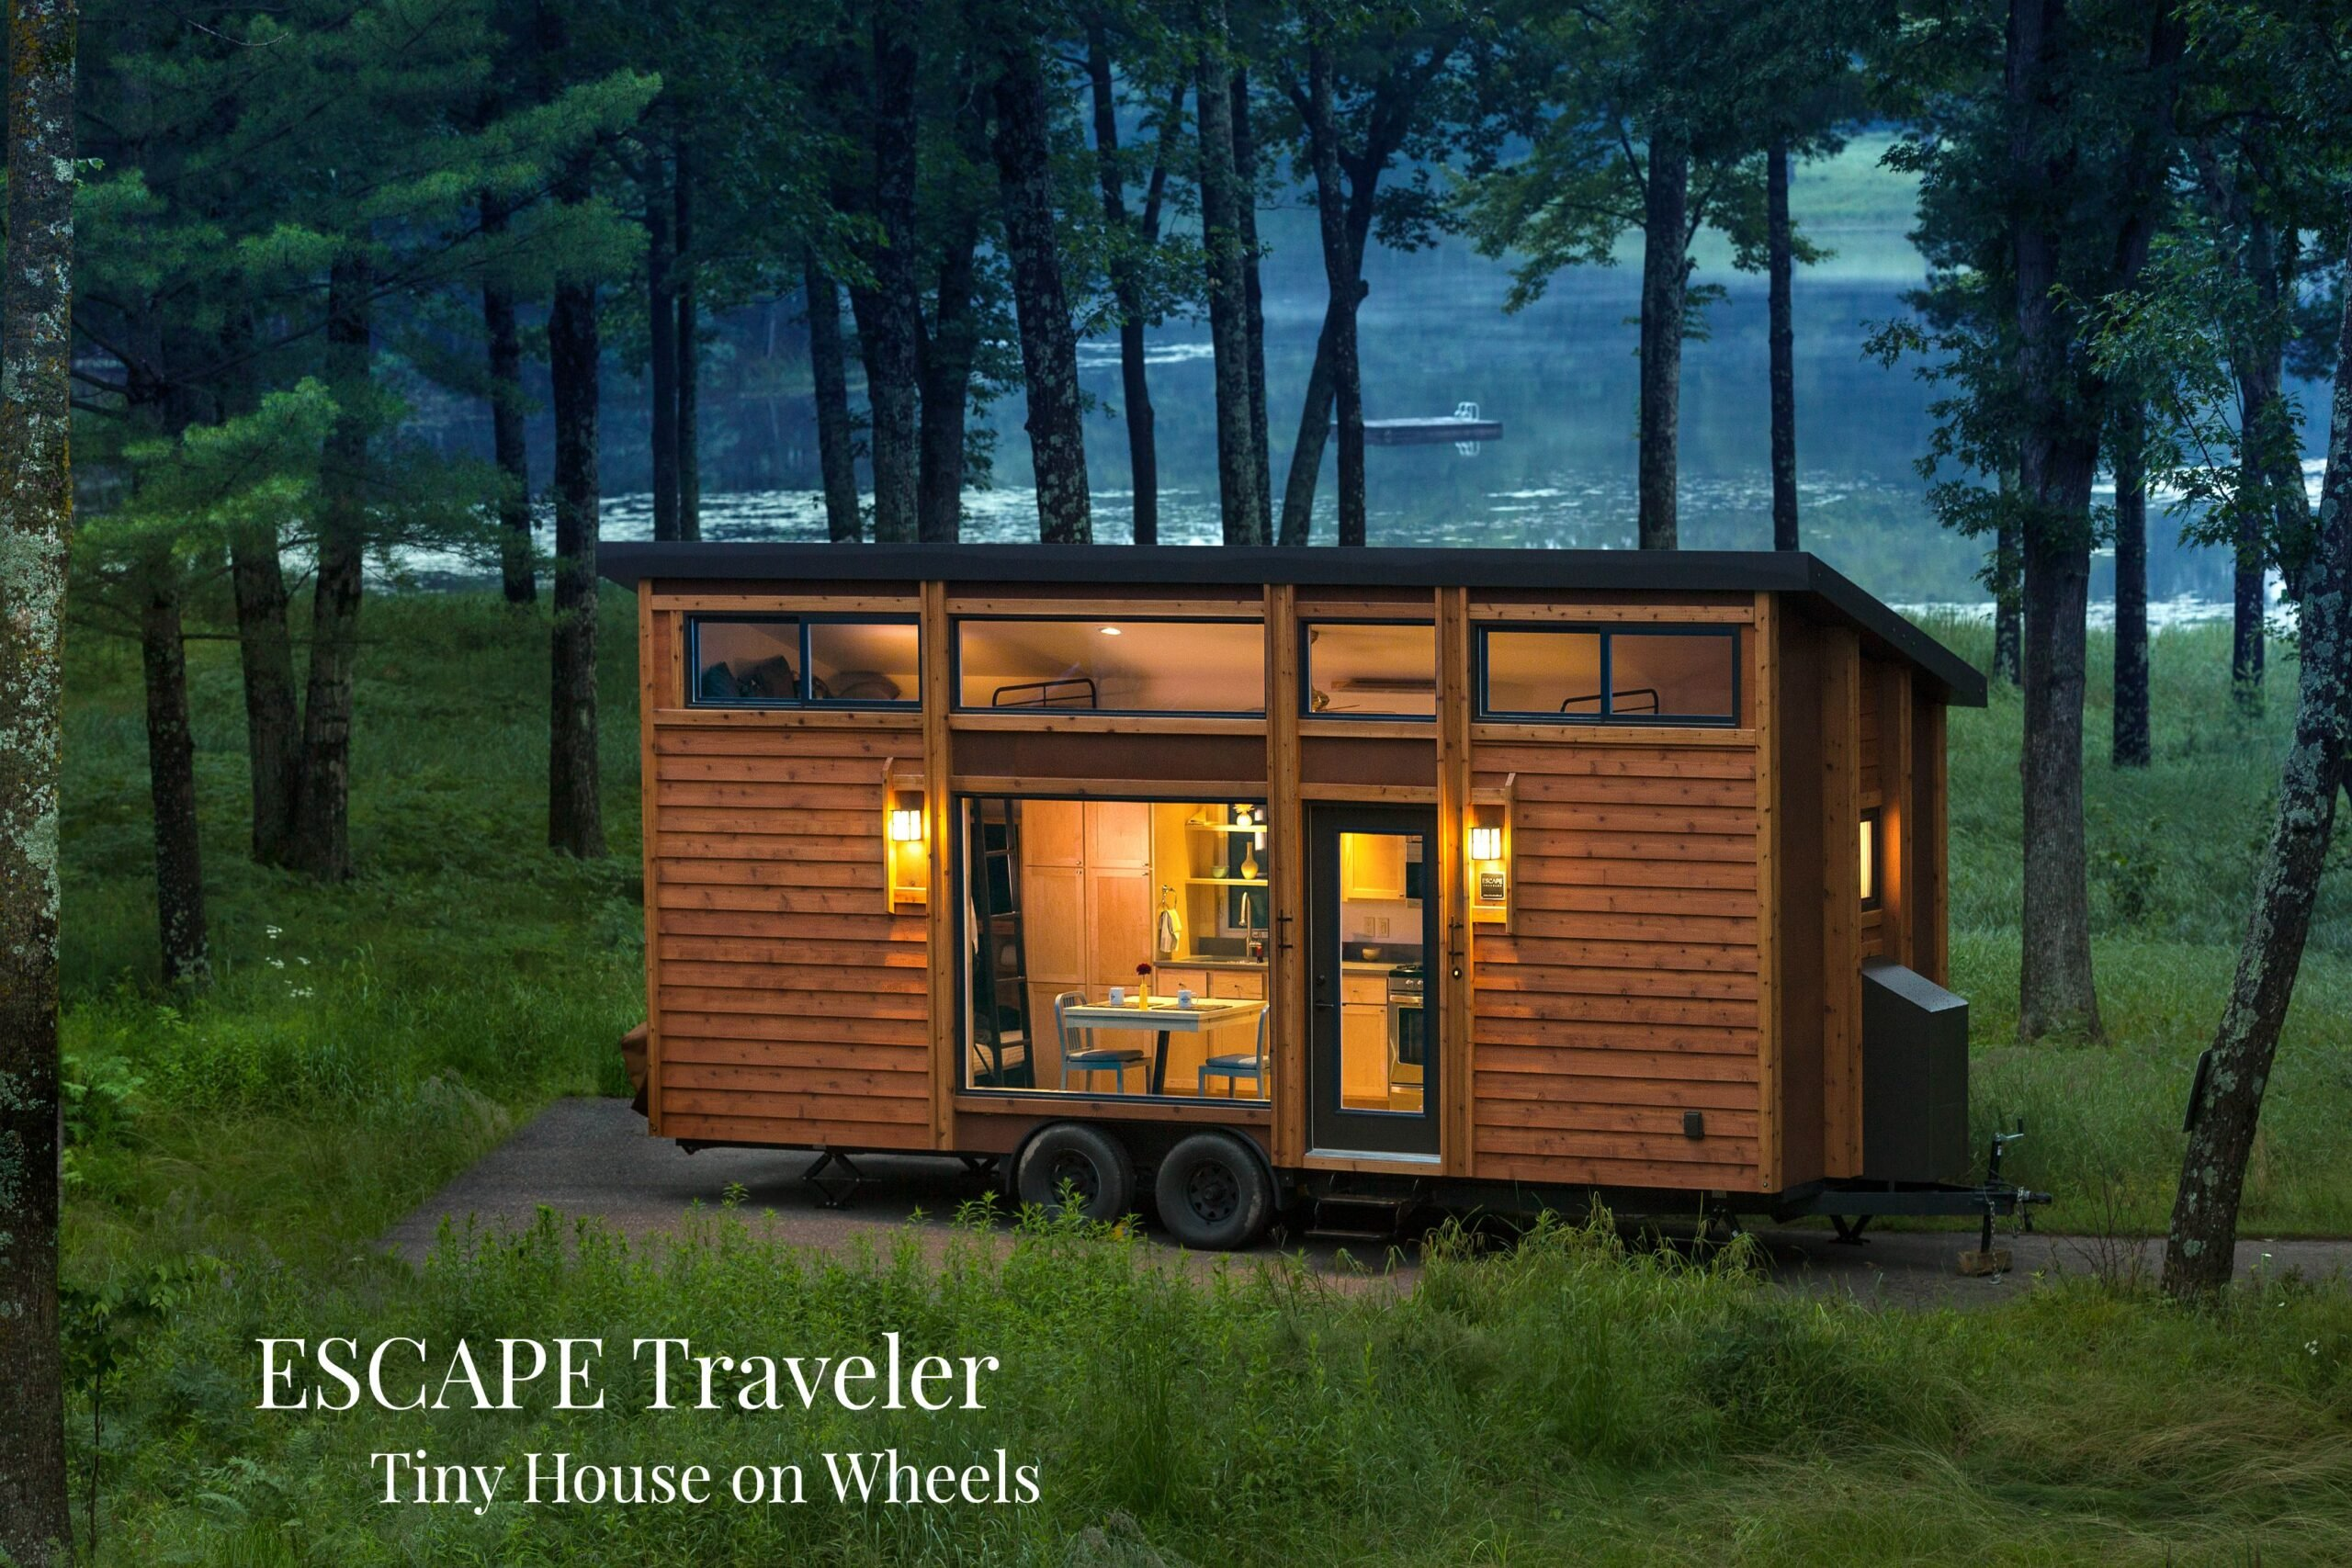 ESCAPE Traveler – Tiny House on Wheels